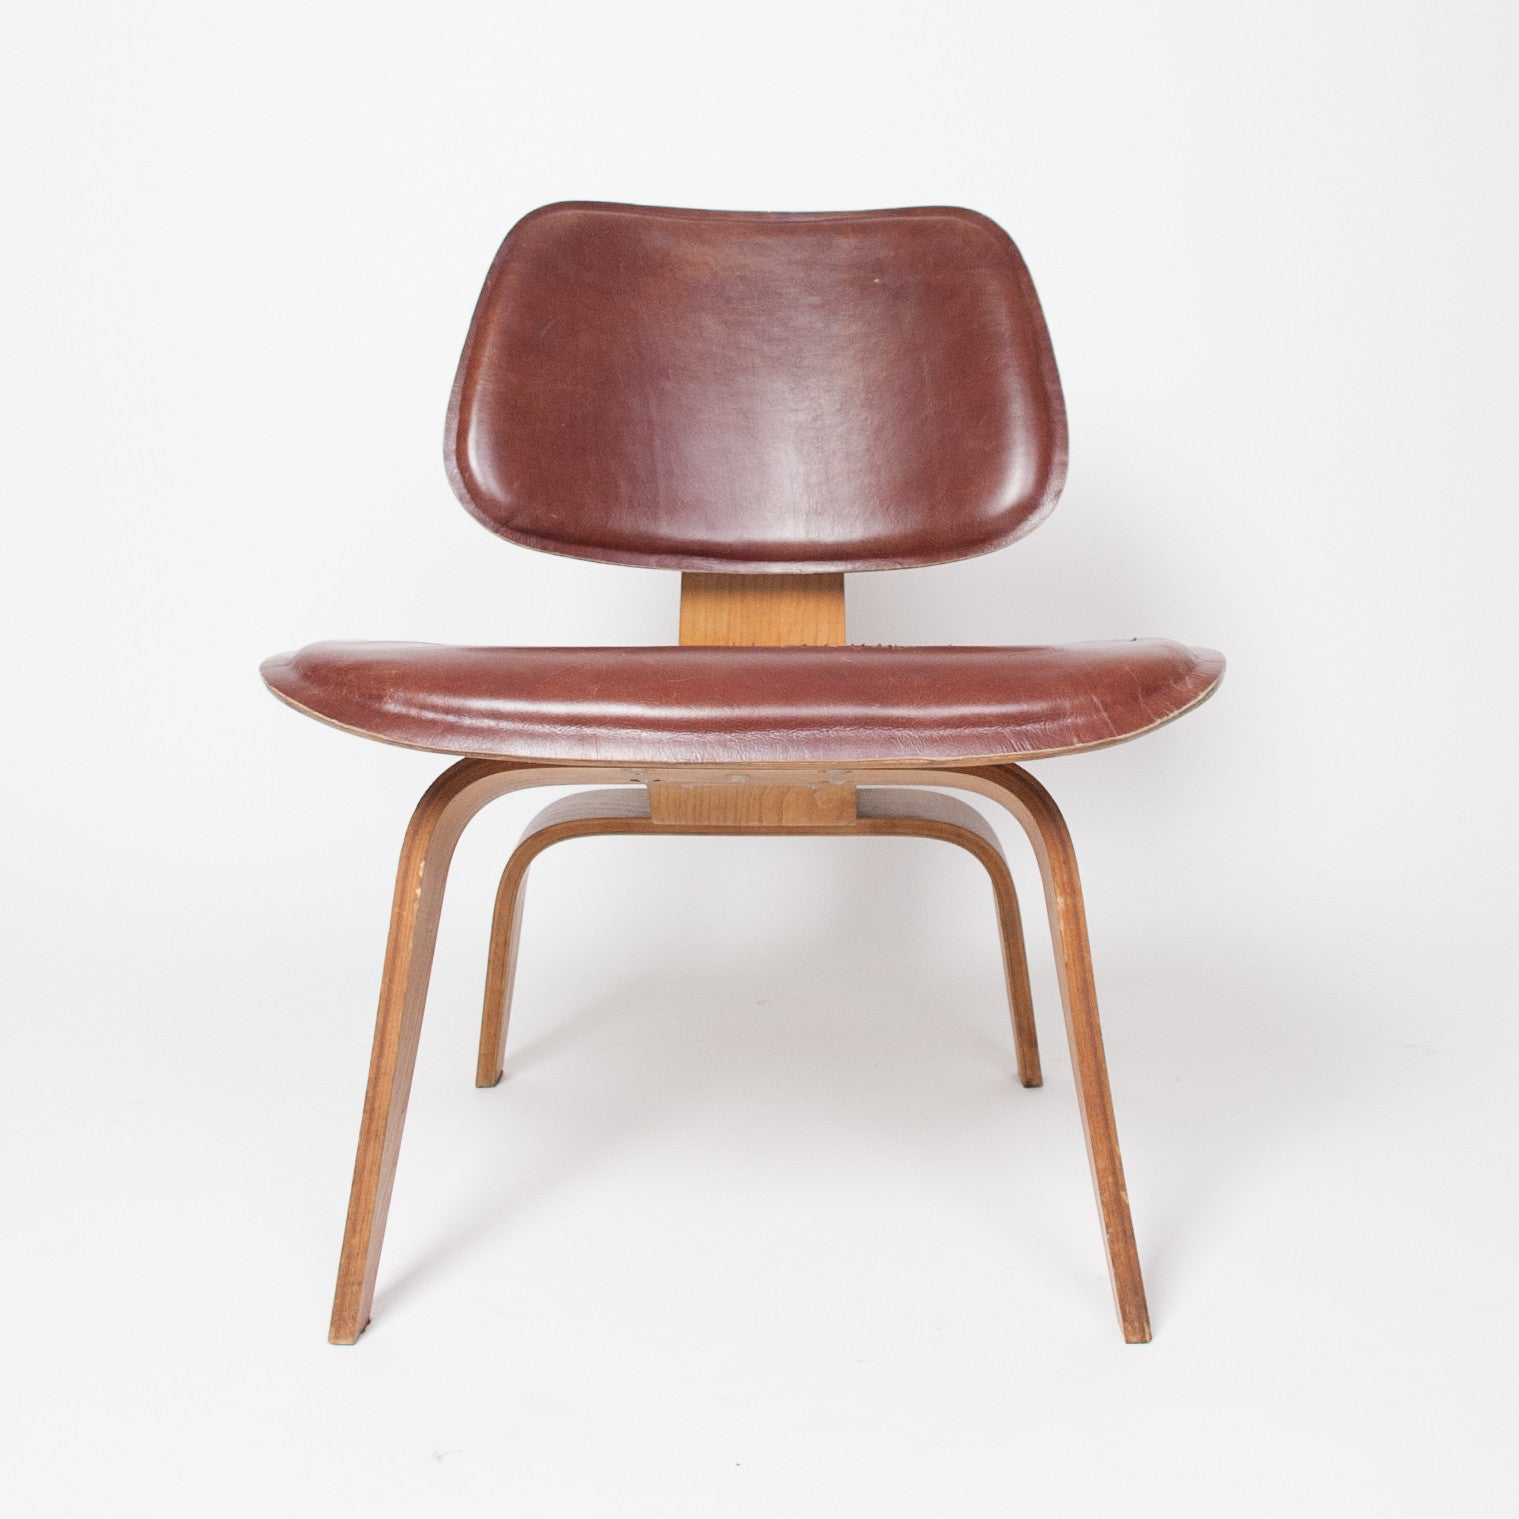 eames chair leather. SOLD Eames Evans Herman Miller 1947 LCW Plywood Lounge Chair Leather! 5-2- Leather E